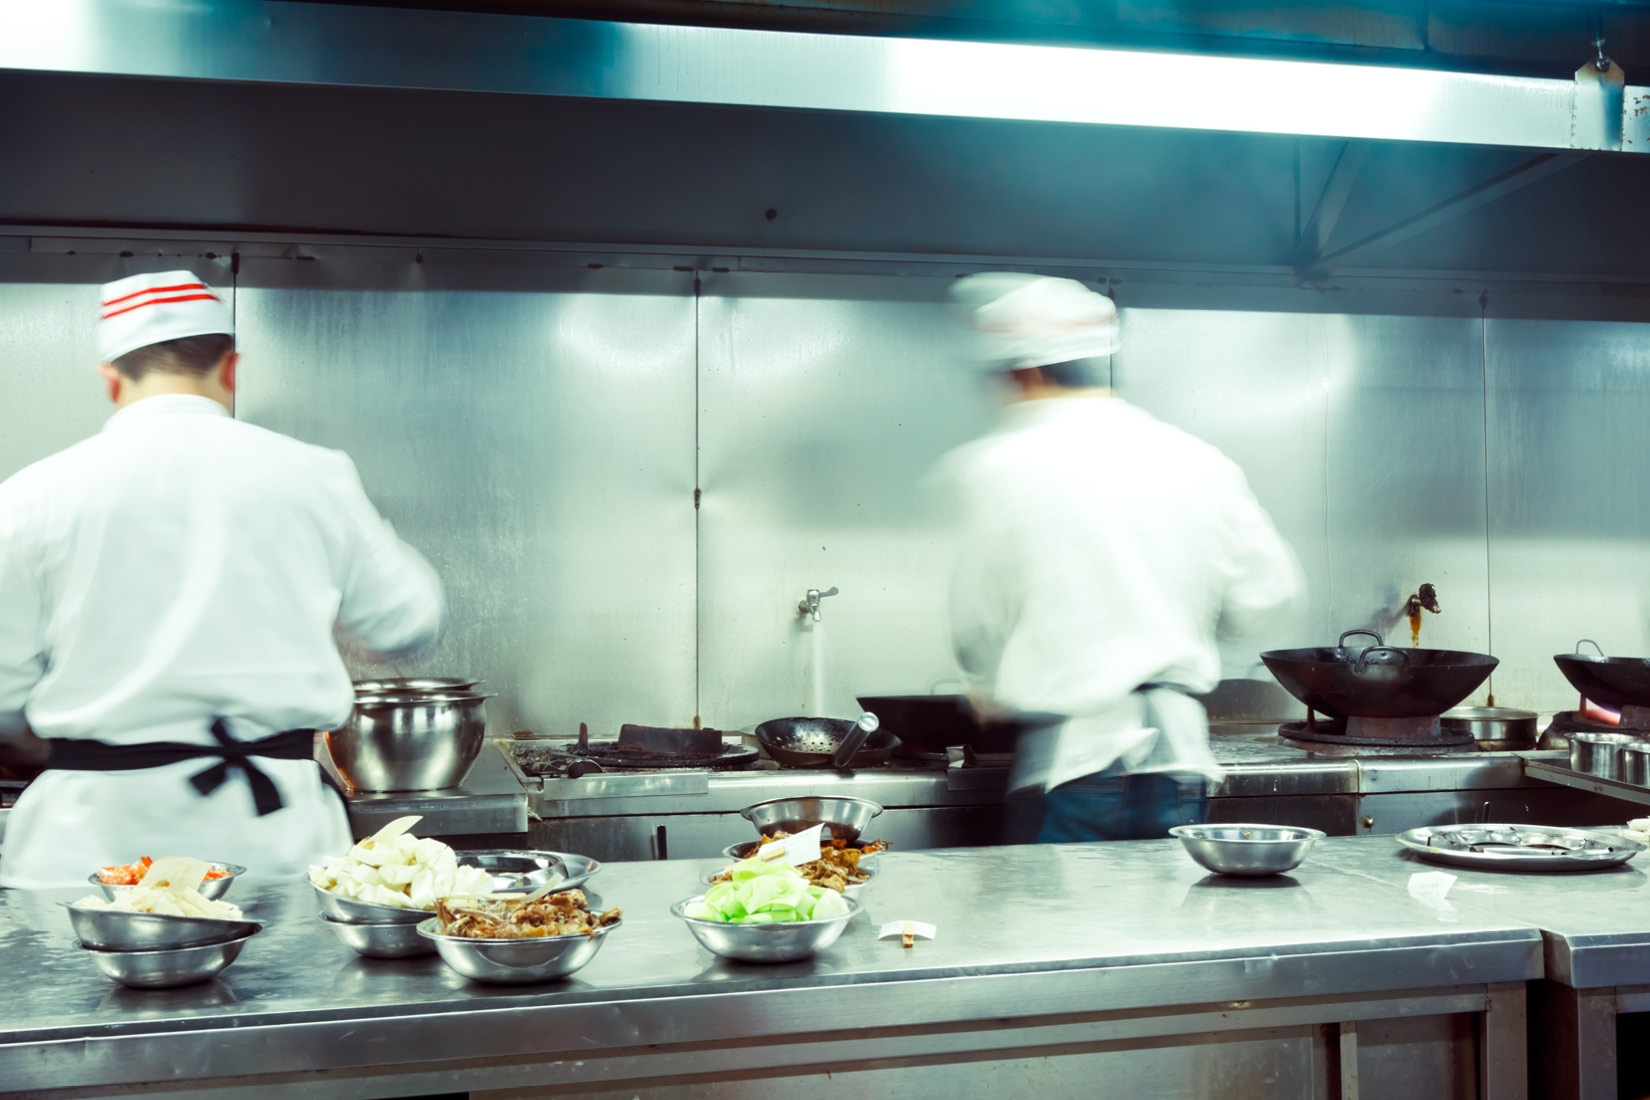 Food Service - We are an industry leading supplier of bespoke and off the shelf food service packaging.